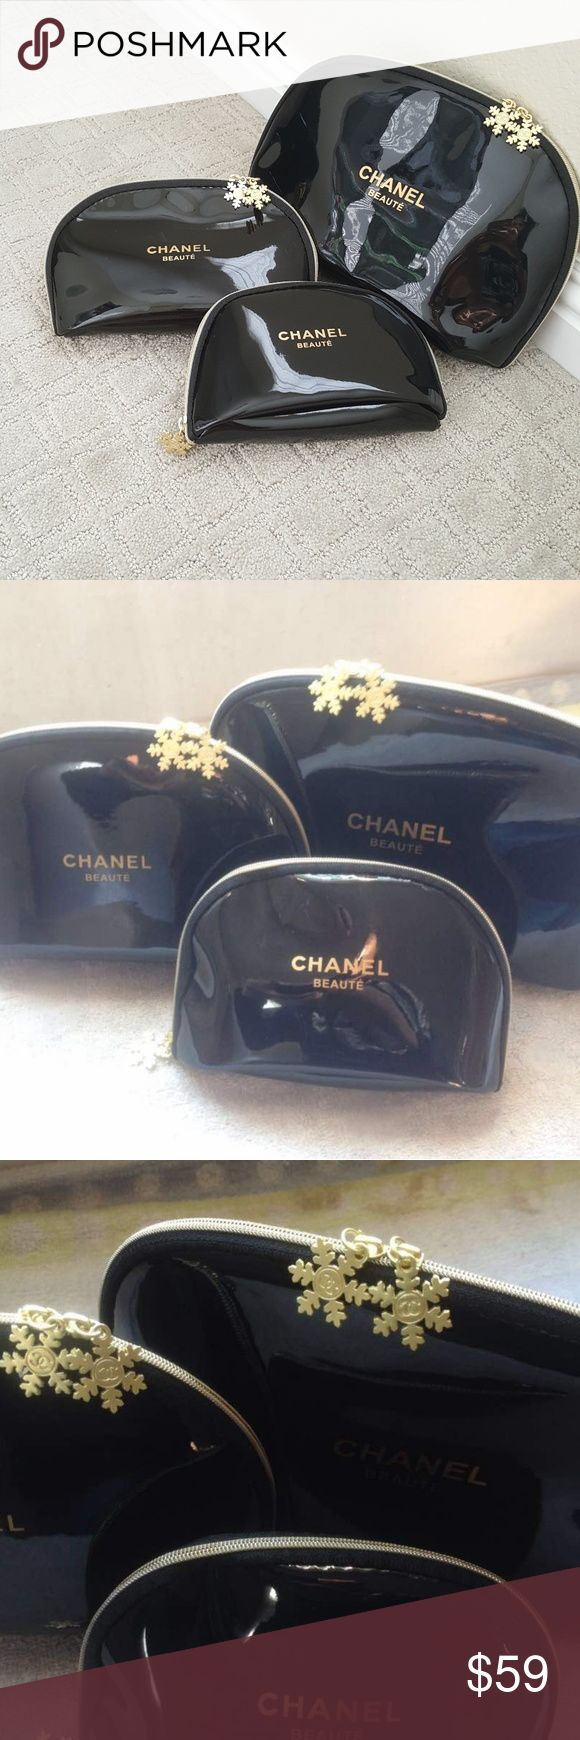 CHANEL VIP GIFT Set of 3 Cosmetic bags. Brand new in package CHANEL VIP GIFT Set of 3 Cosmetic bags get all 3 for 1 price! Bags Cosmetic Bags & Cases